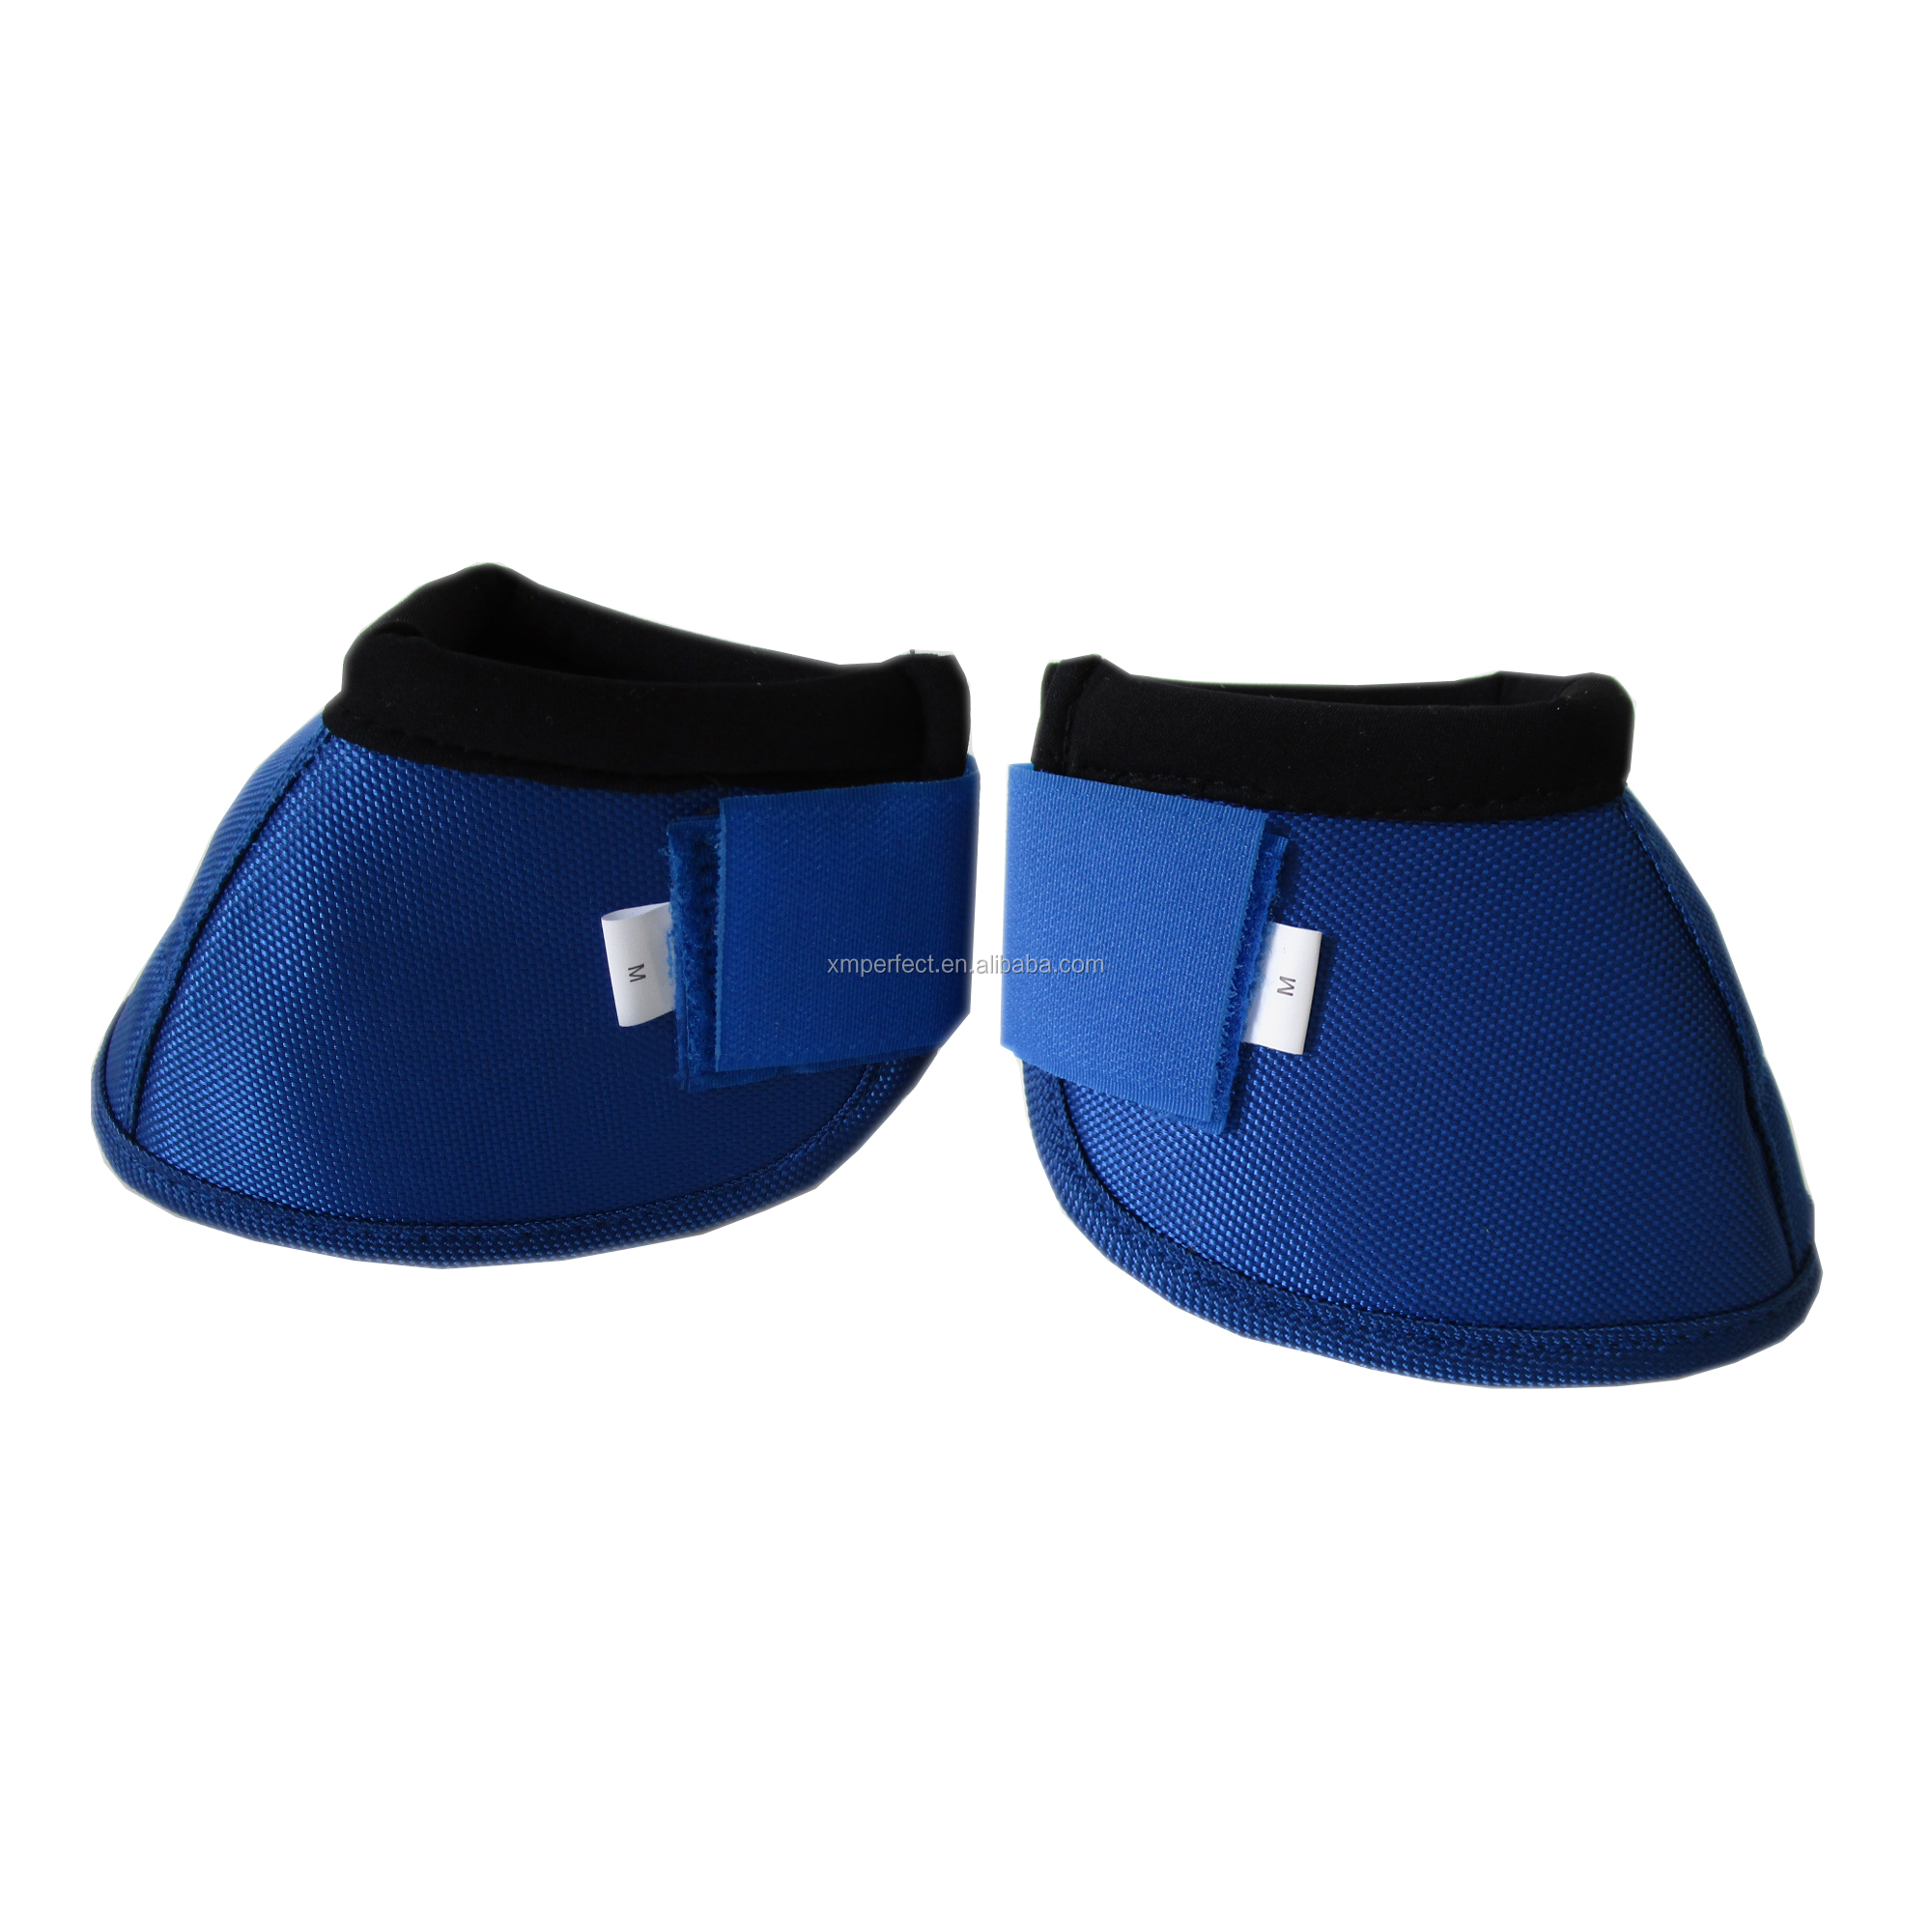 Neoprene No Turn Horse Bell Boots Buy Horse Equipment Equestrian Products Saddle Pads For Horses Product On Alibaba Com